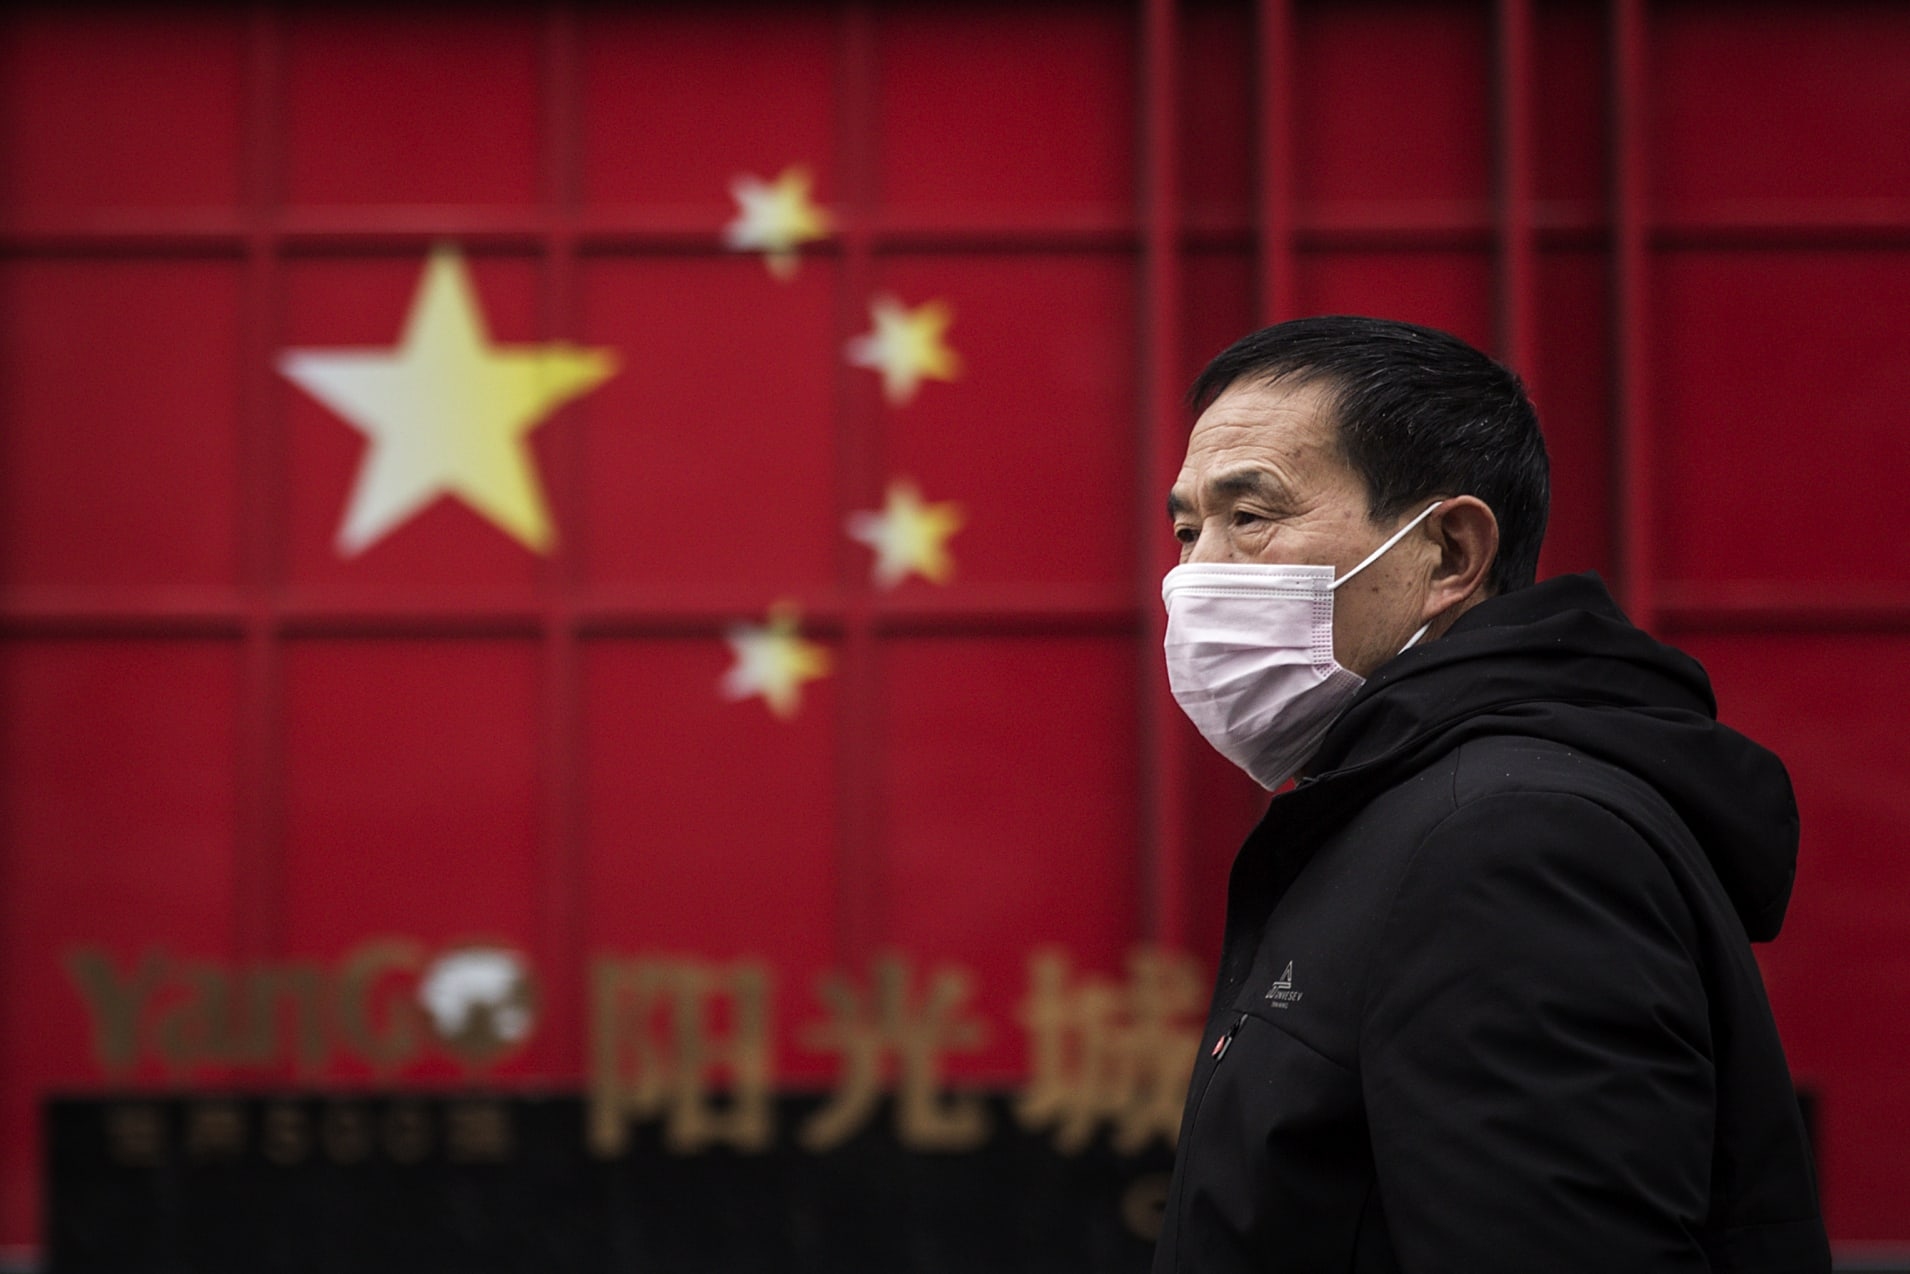 WHO dismisses as 'highly speculative' claim that Coronavirus did not emerge in China